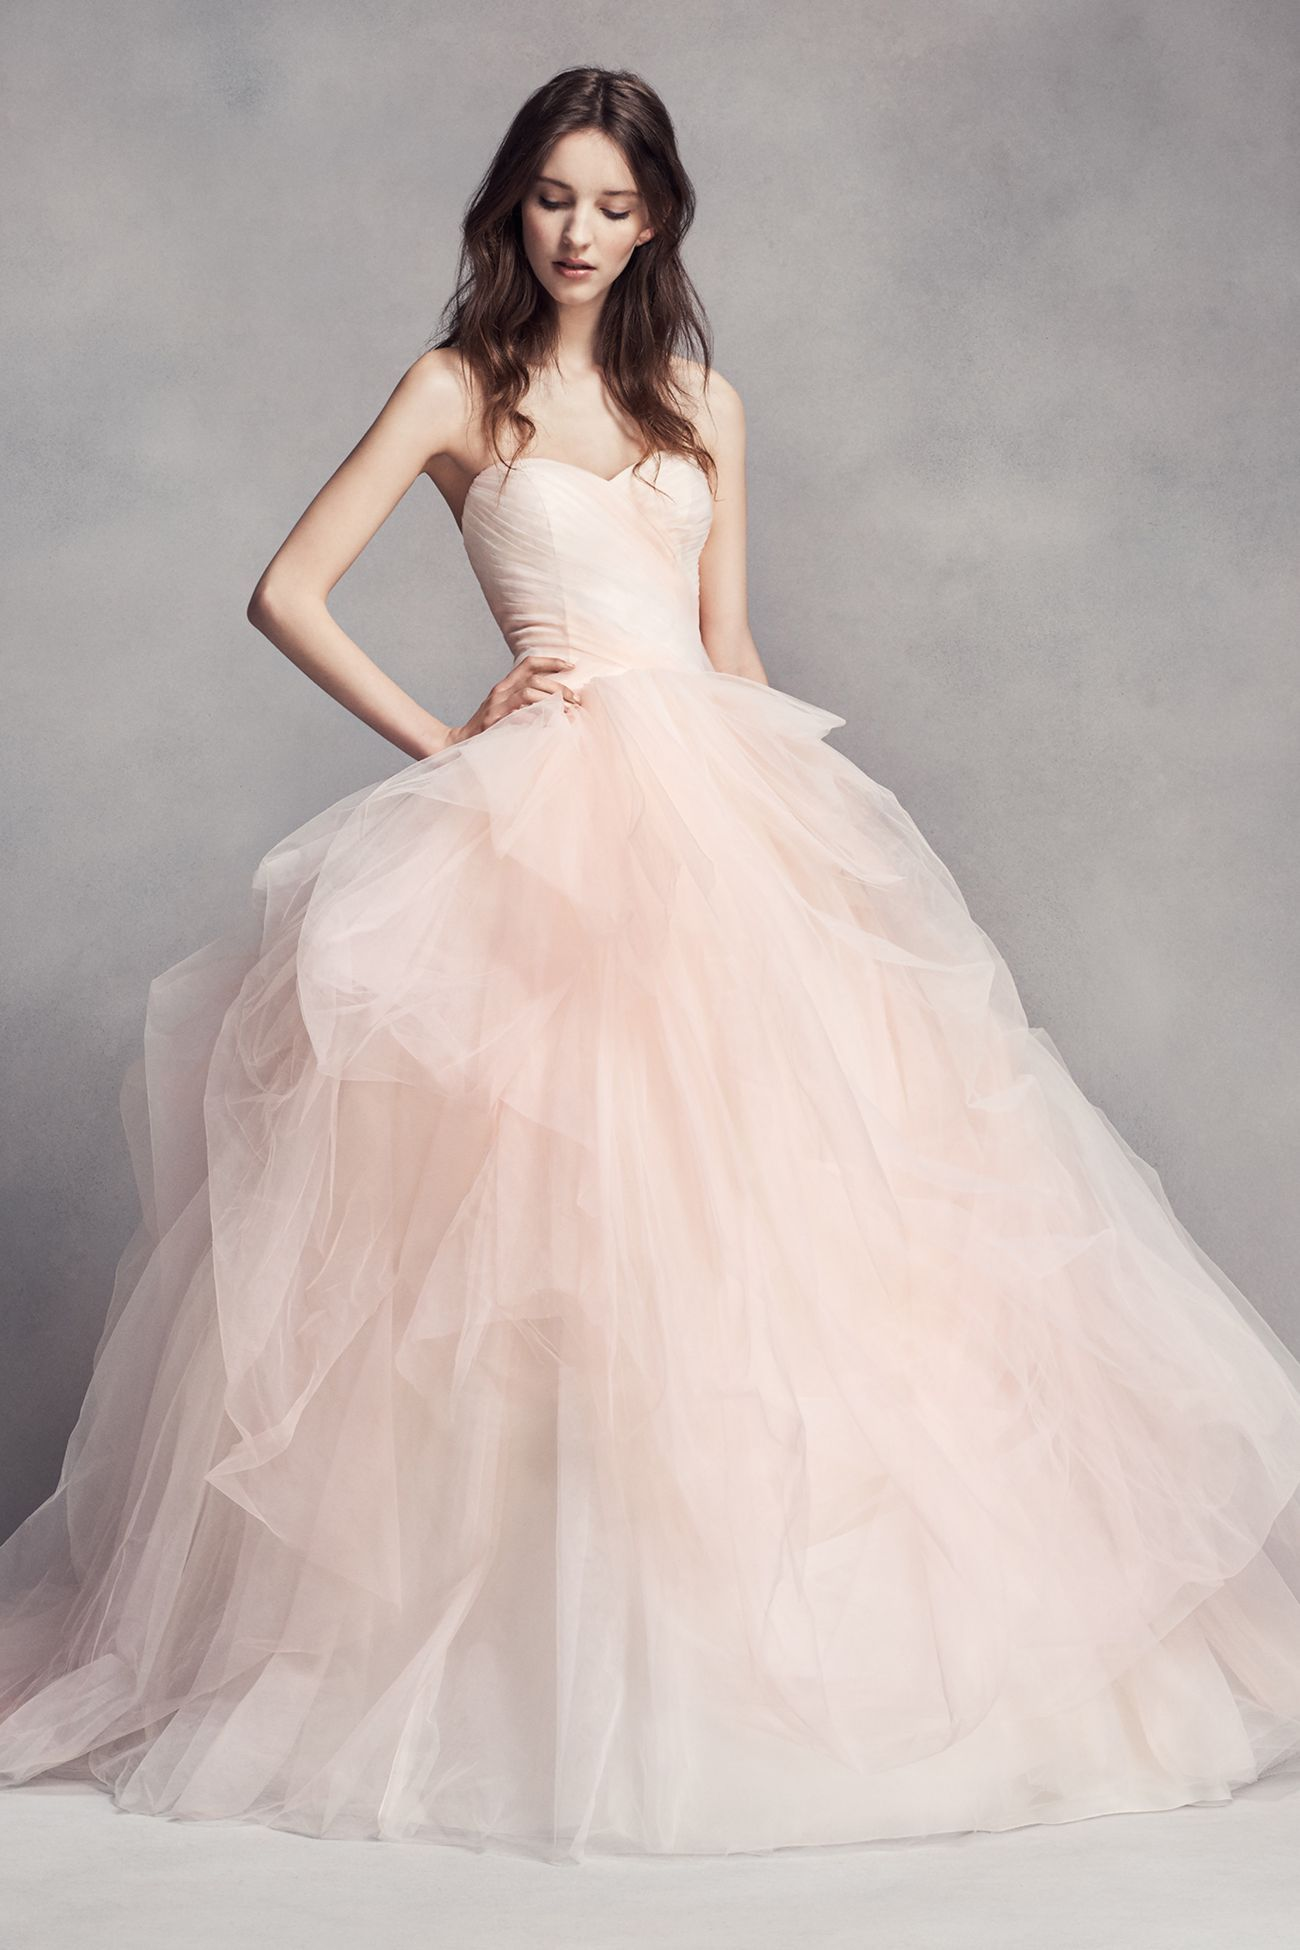 09ccdce133 Vera Wang Ombre Tulle Wedding Dress | Wedding Dresses in 2019 ...